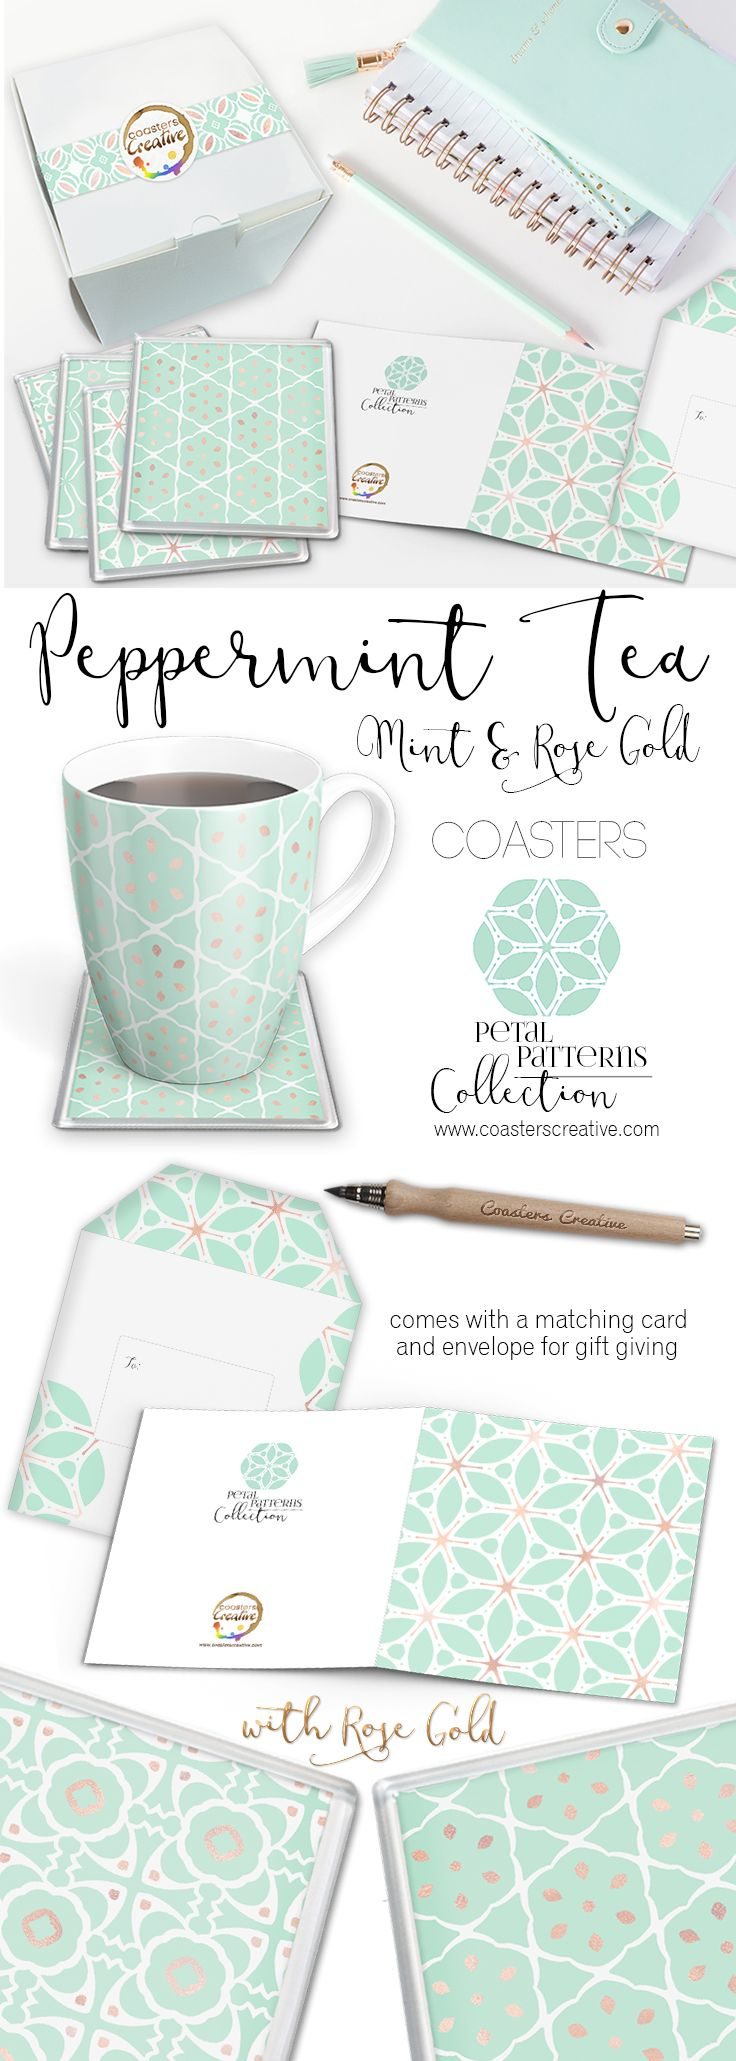 Mint Coasters - Mint Green - Mint Drinks - Peppermint Tea - Mint Coasters - Drinks Coasters | $44.00 Boxed Set of 6 with matching Card & Envelope | coasterscreative.com